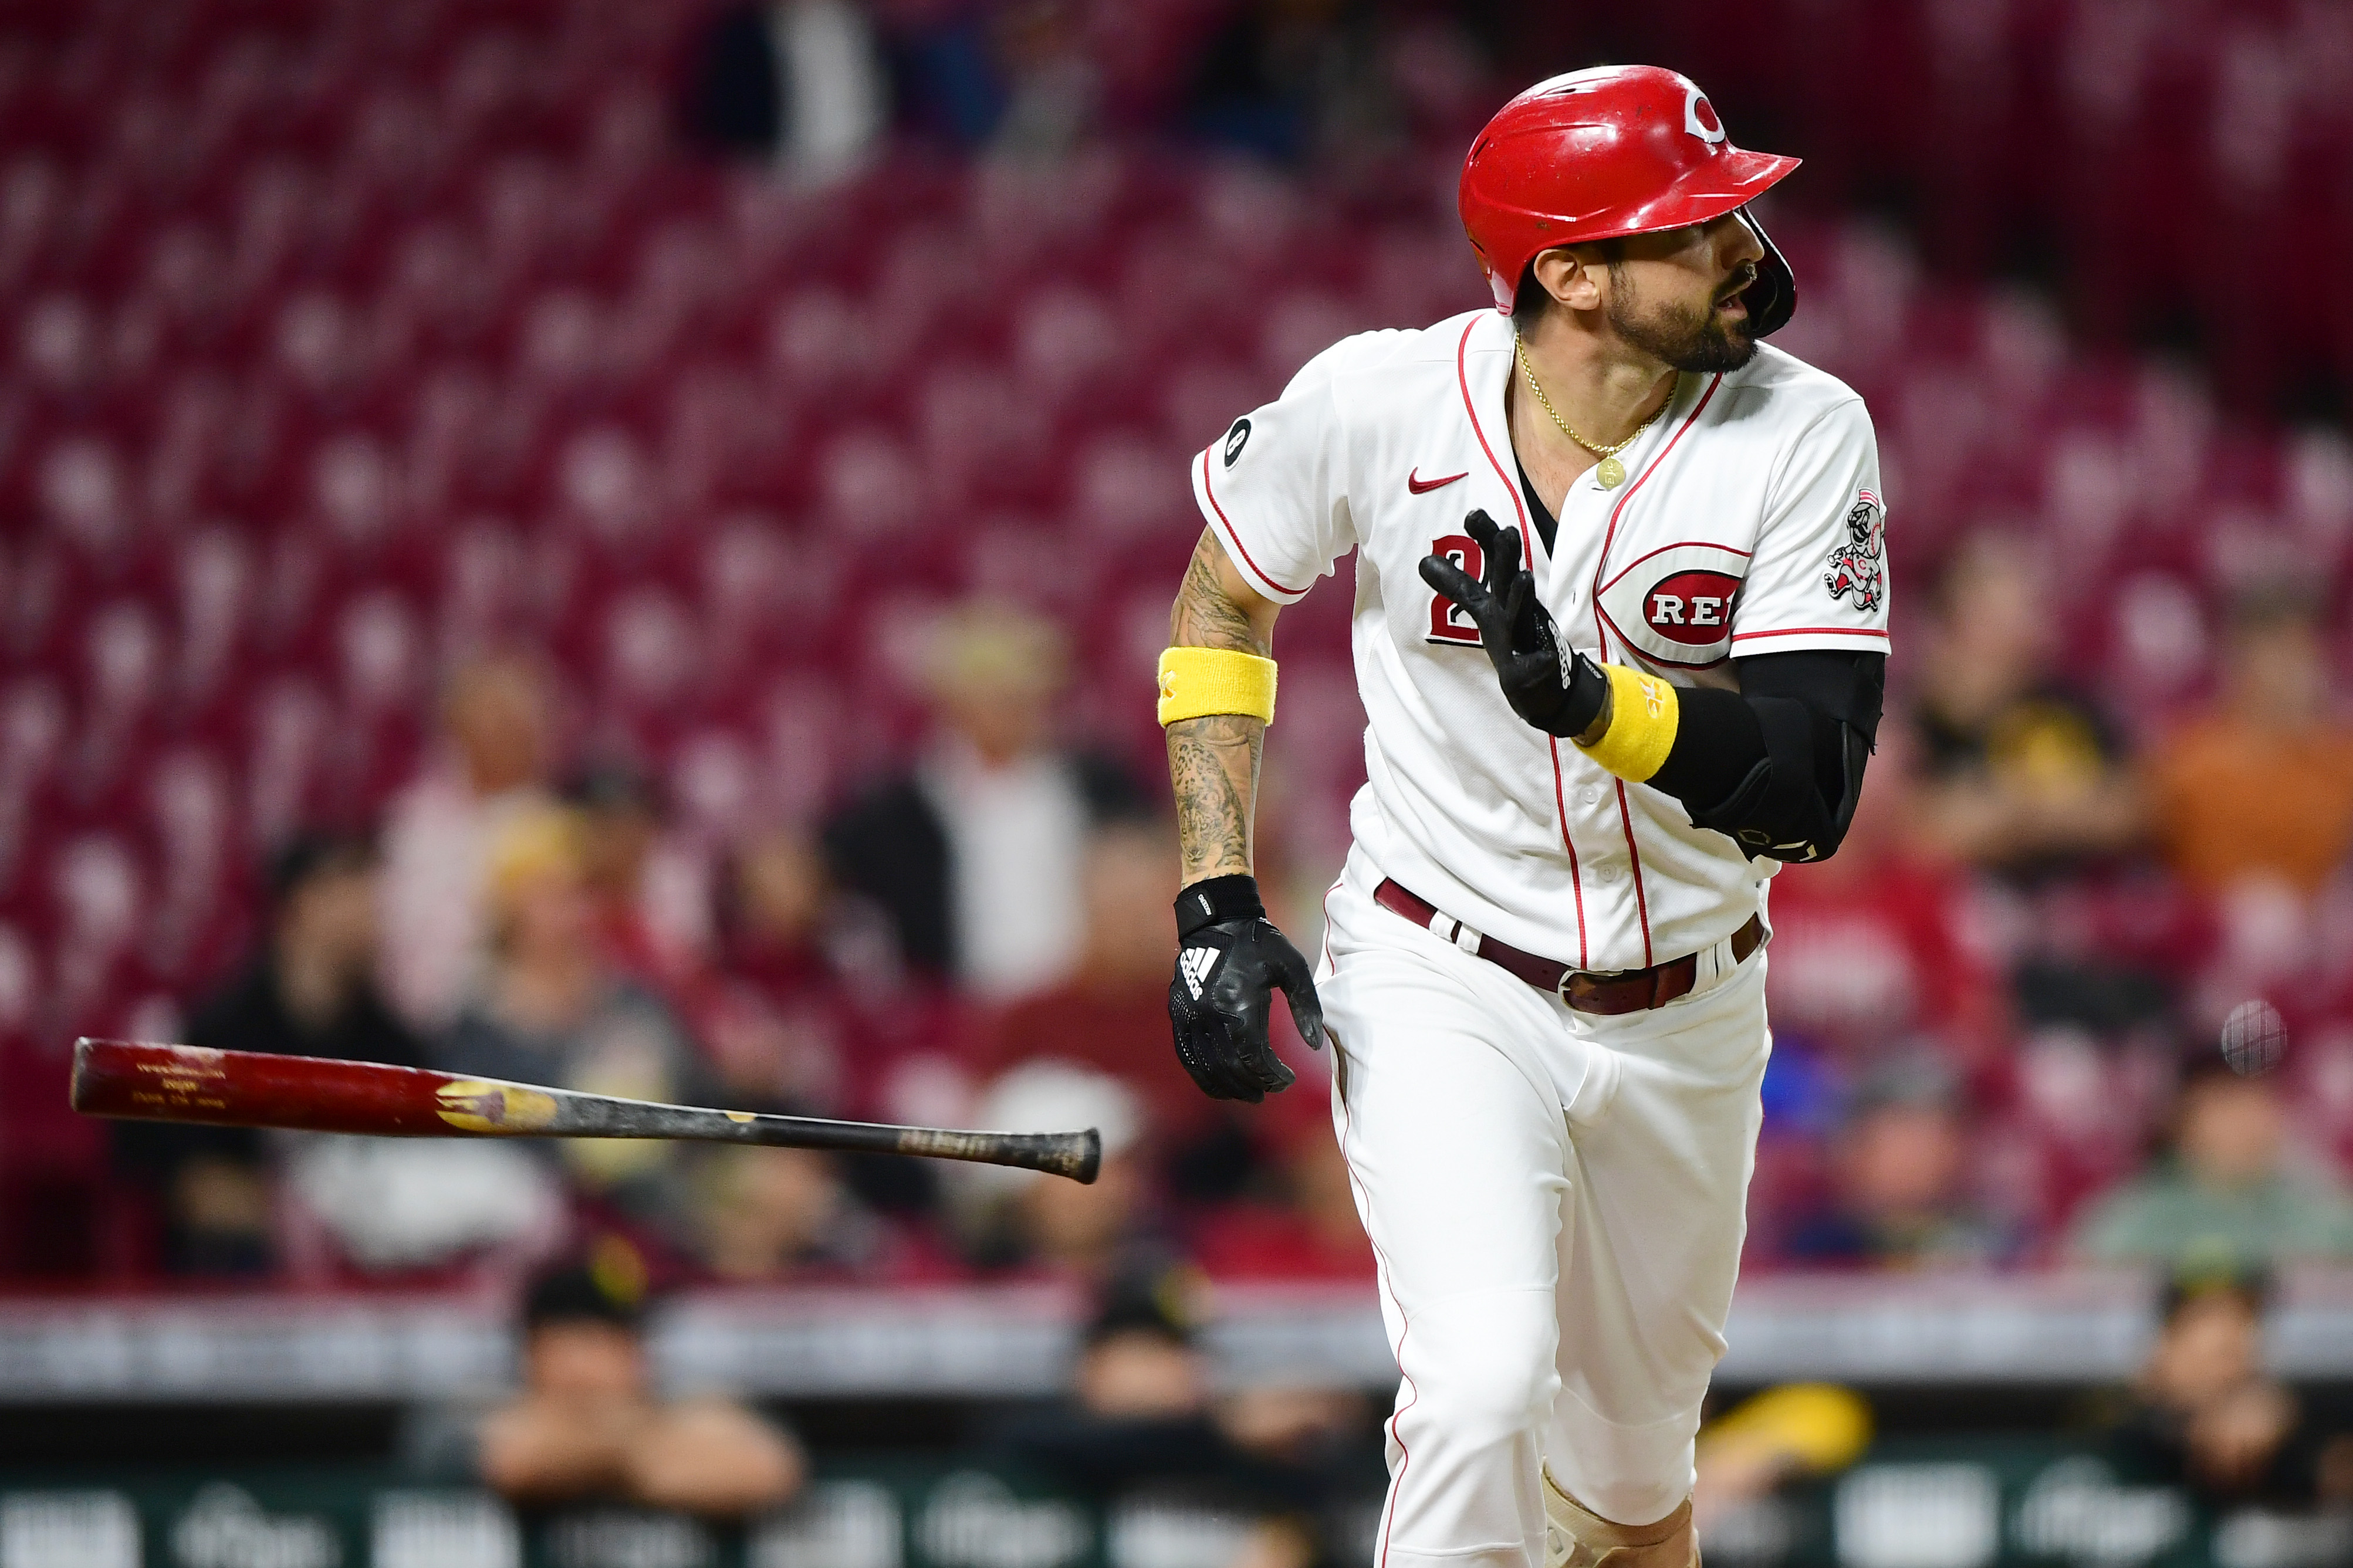 Nick Castellanos #2 of the Cincinnati Reds tosses his bat after hitting a two-RBI double in the third inning during their game against the Pittsburgh Pirates at Great American Ball Park on September 20, 2021 in Cincinnati, Ohio.